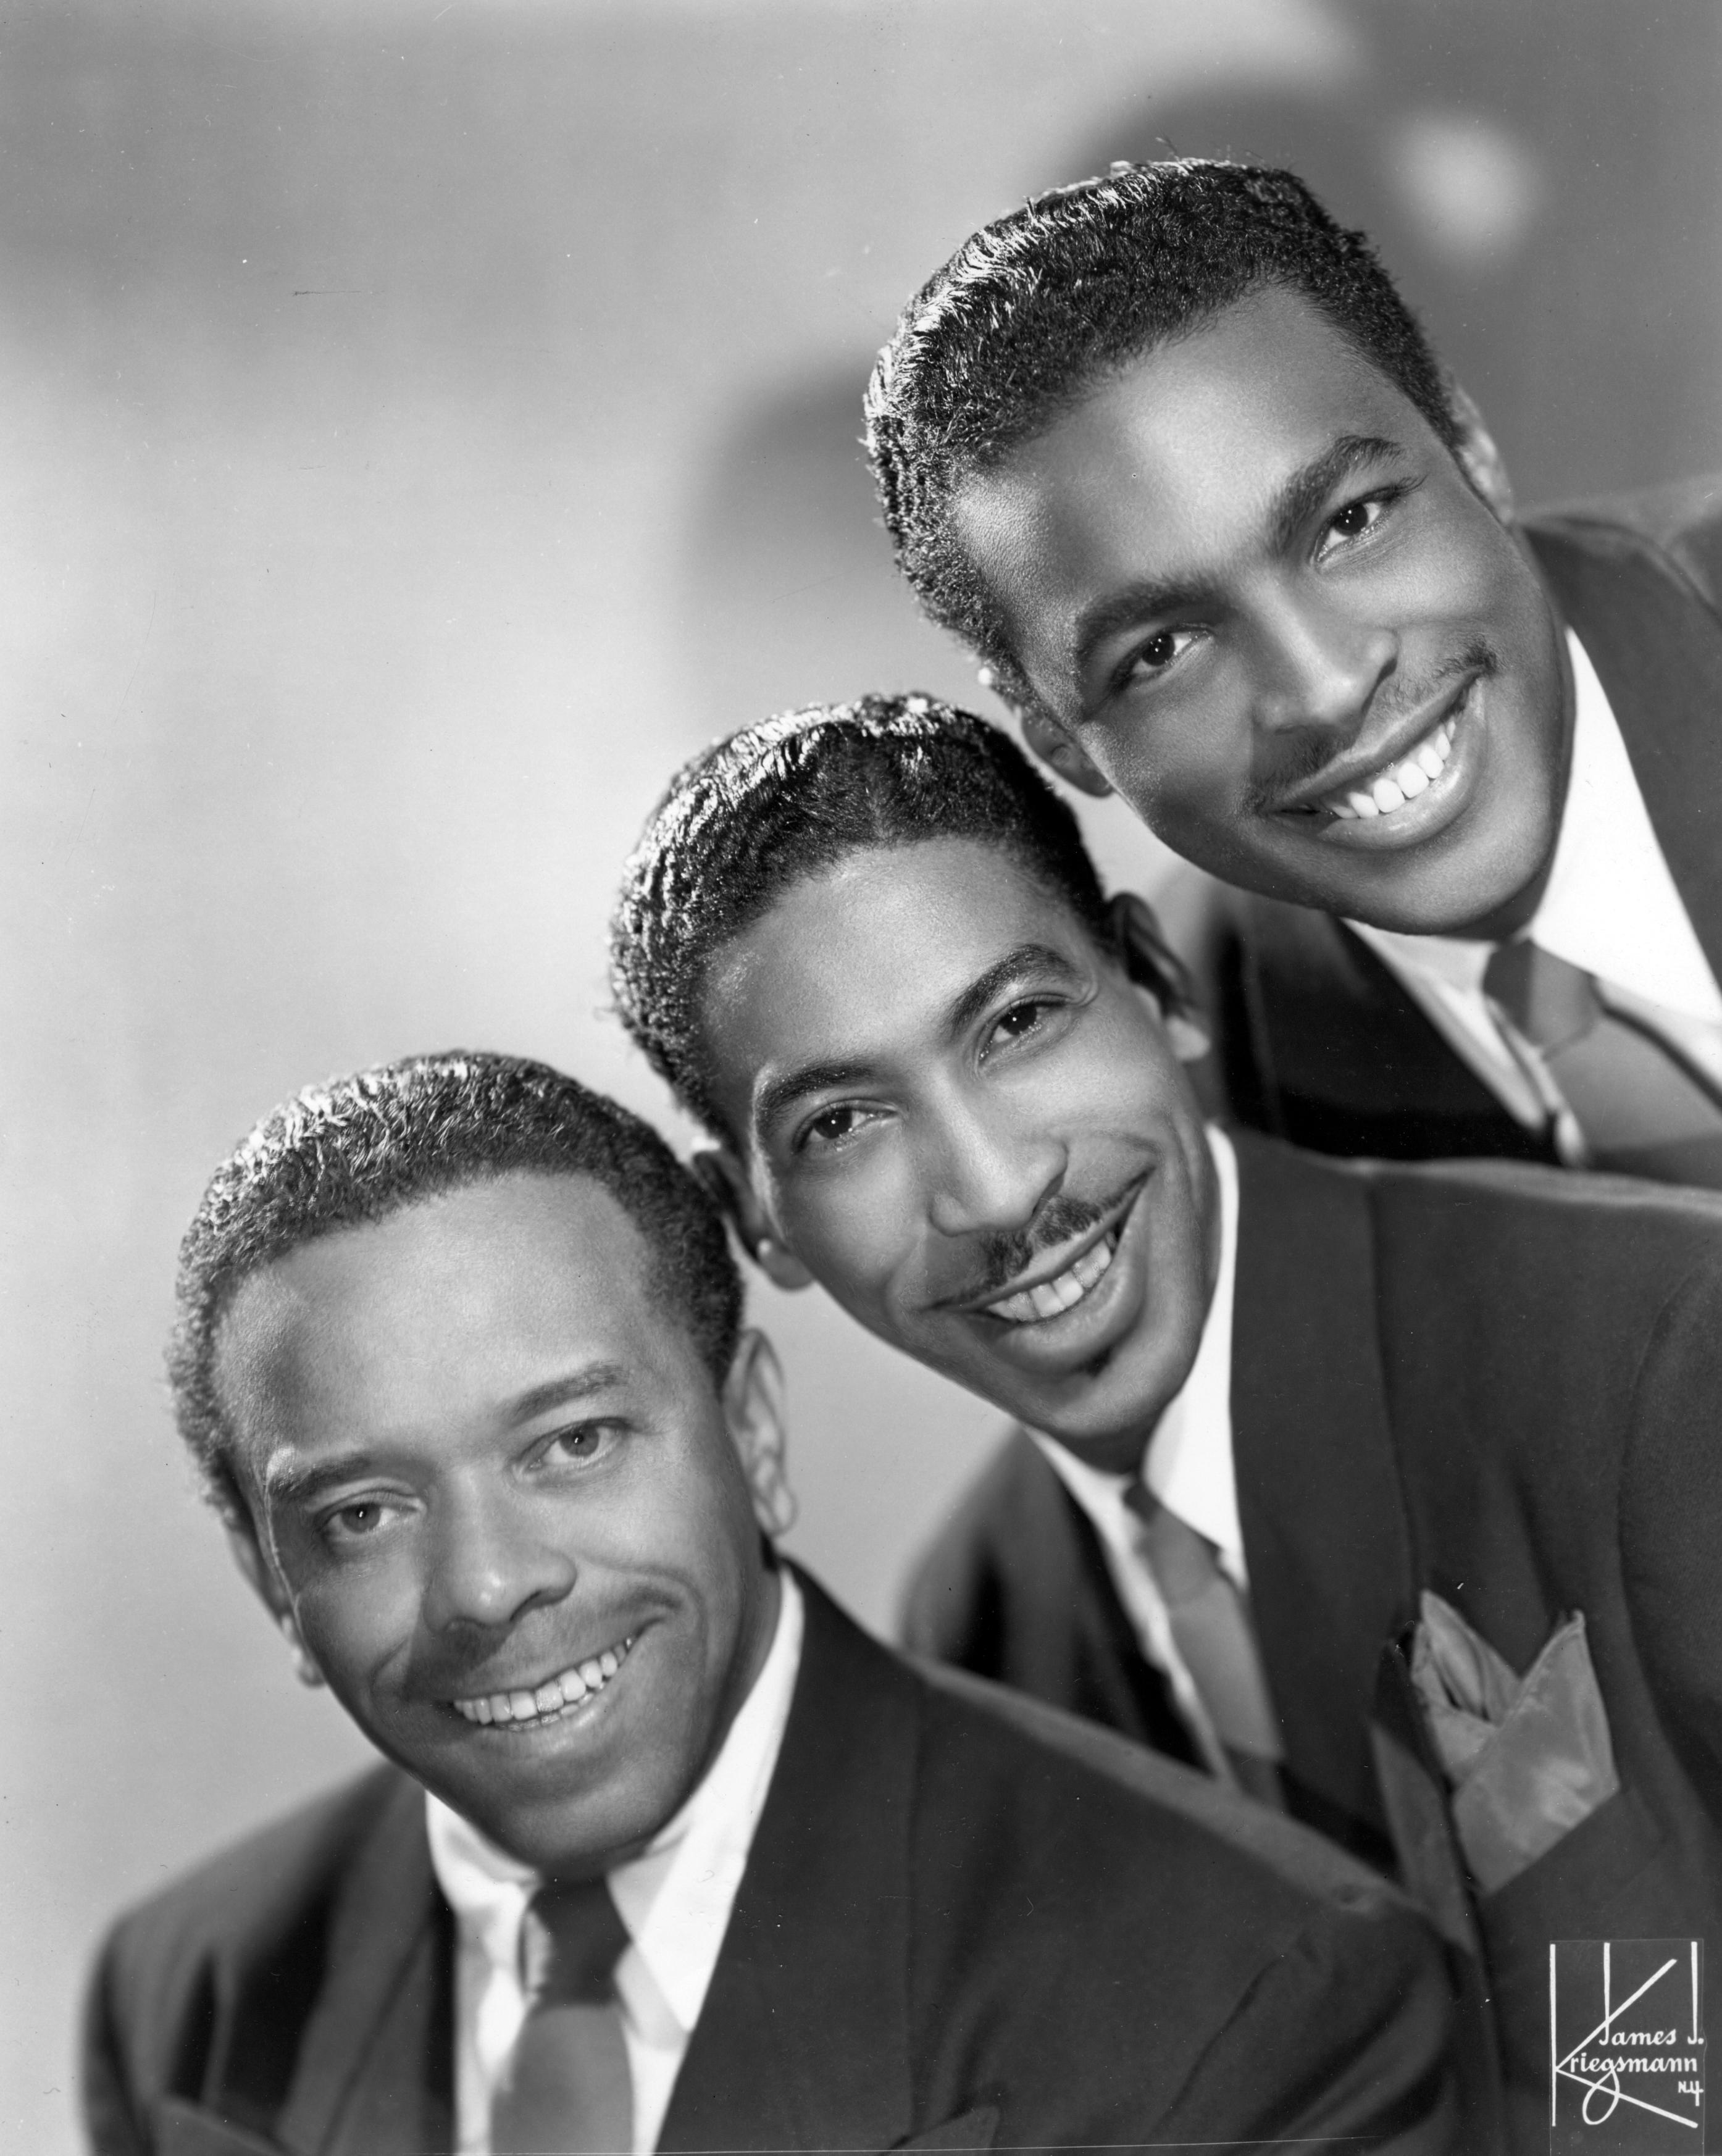 Charles Brown (far right) with fellow Blazers (from left) Johnny Moore and Eddie Williams.